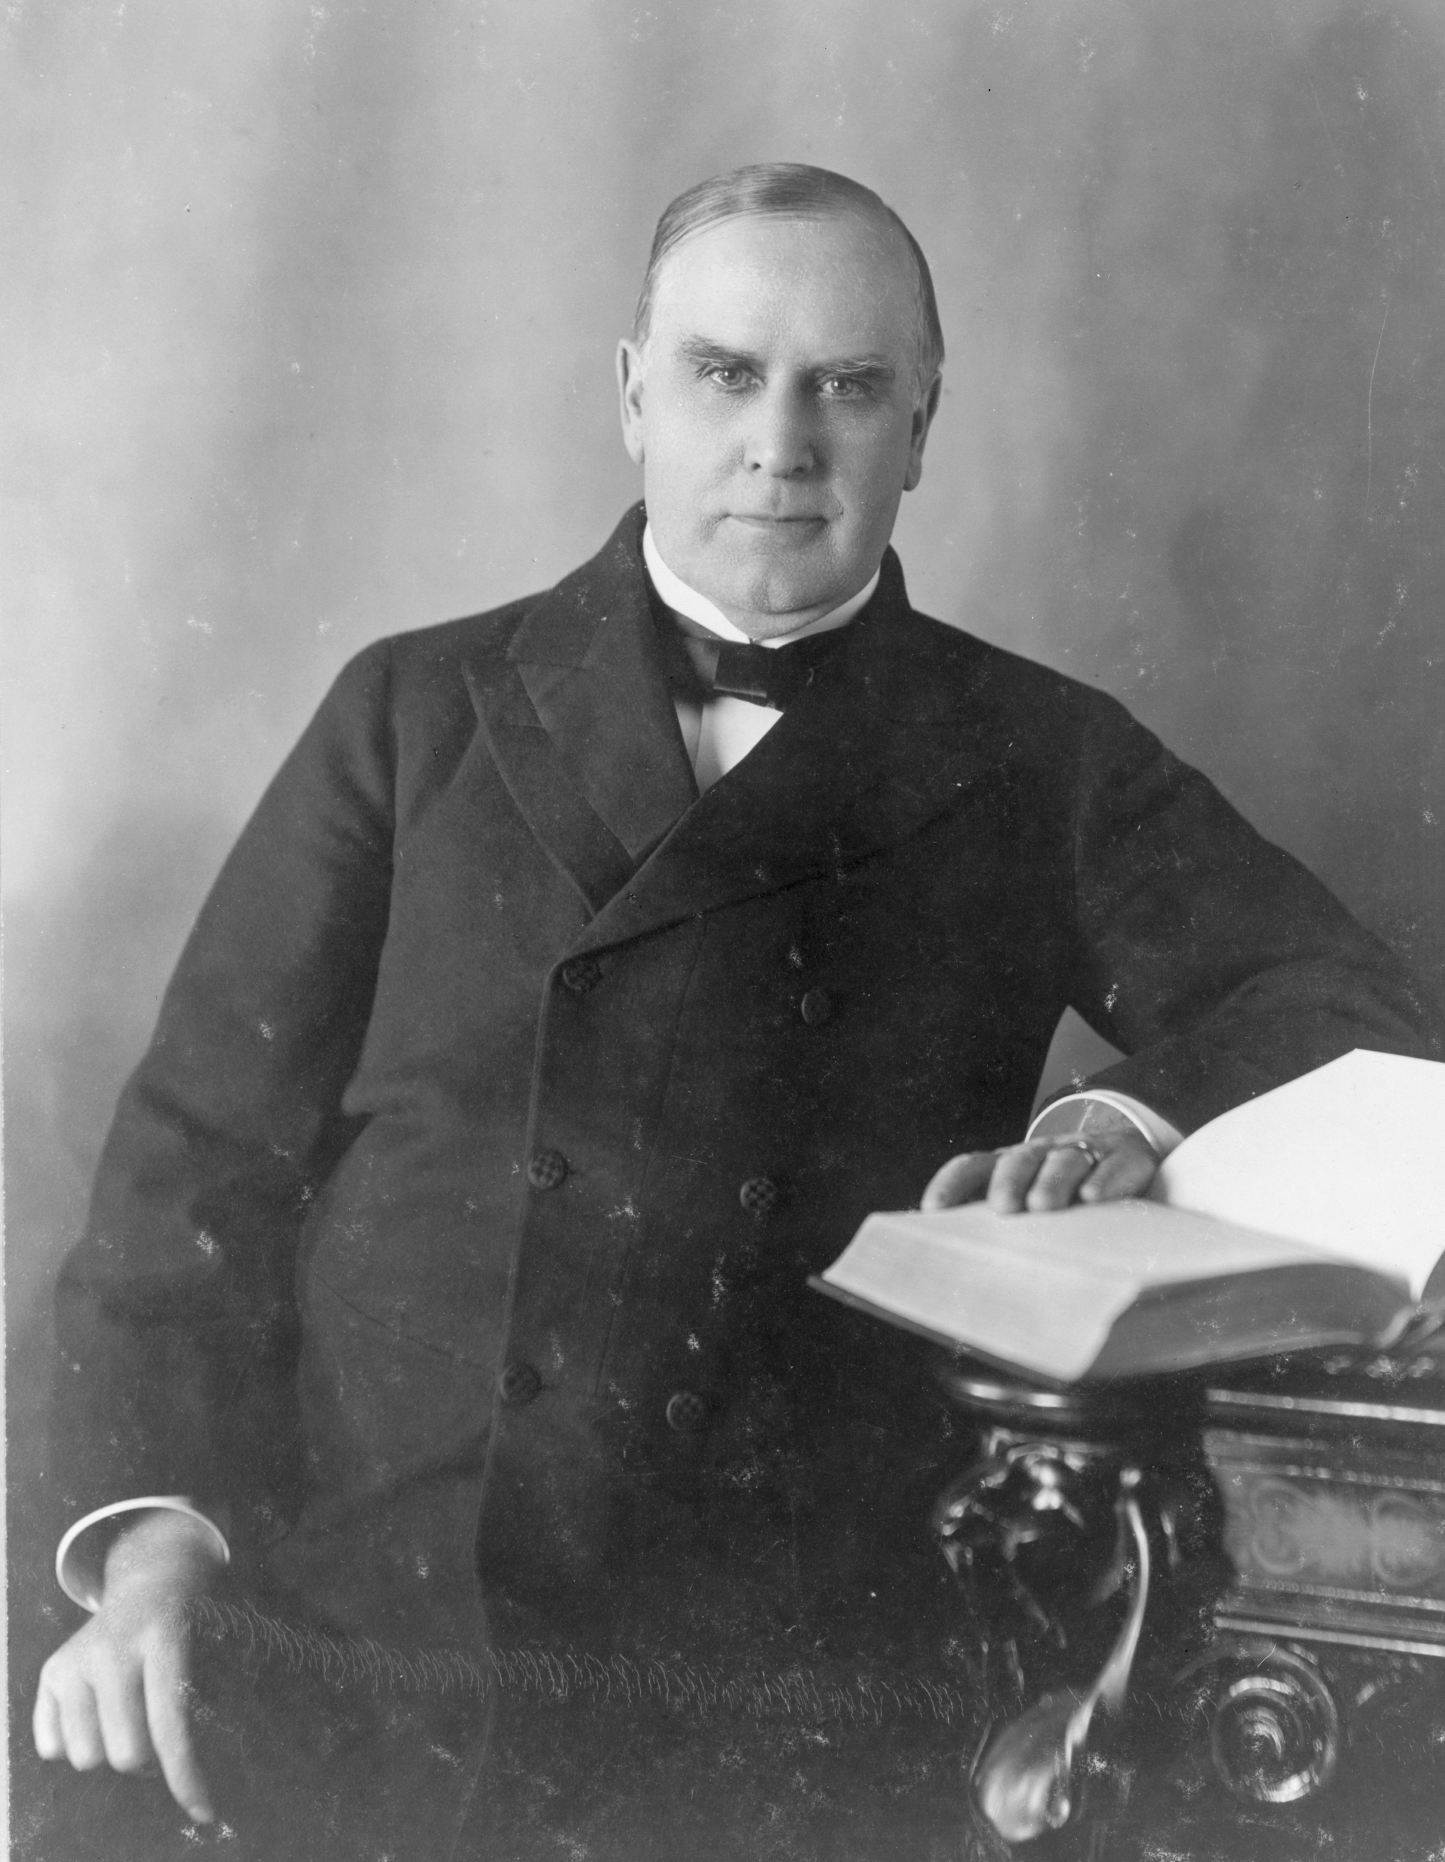 File:William McKinley 1.png - Wikimedia Commons